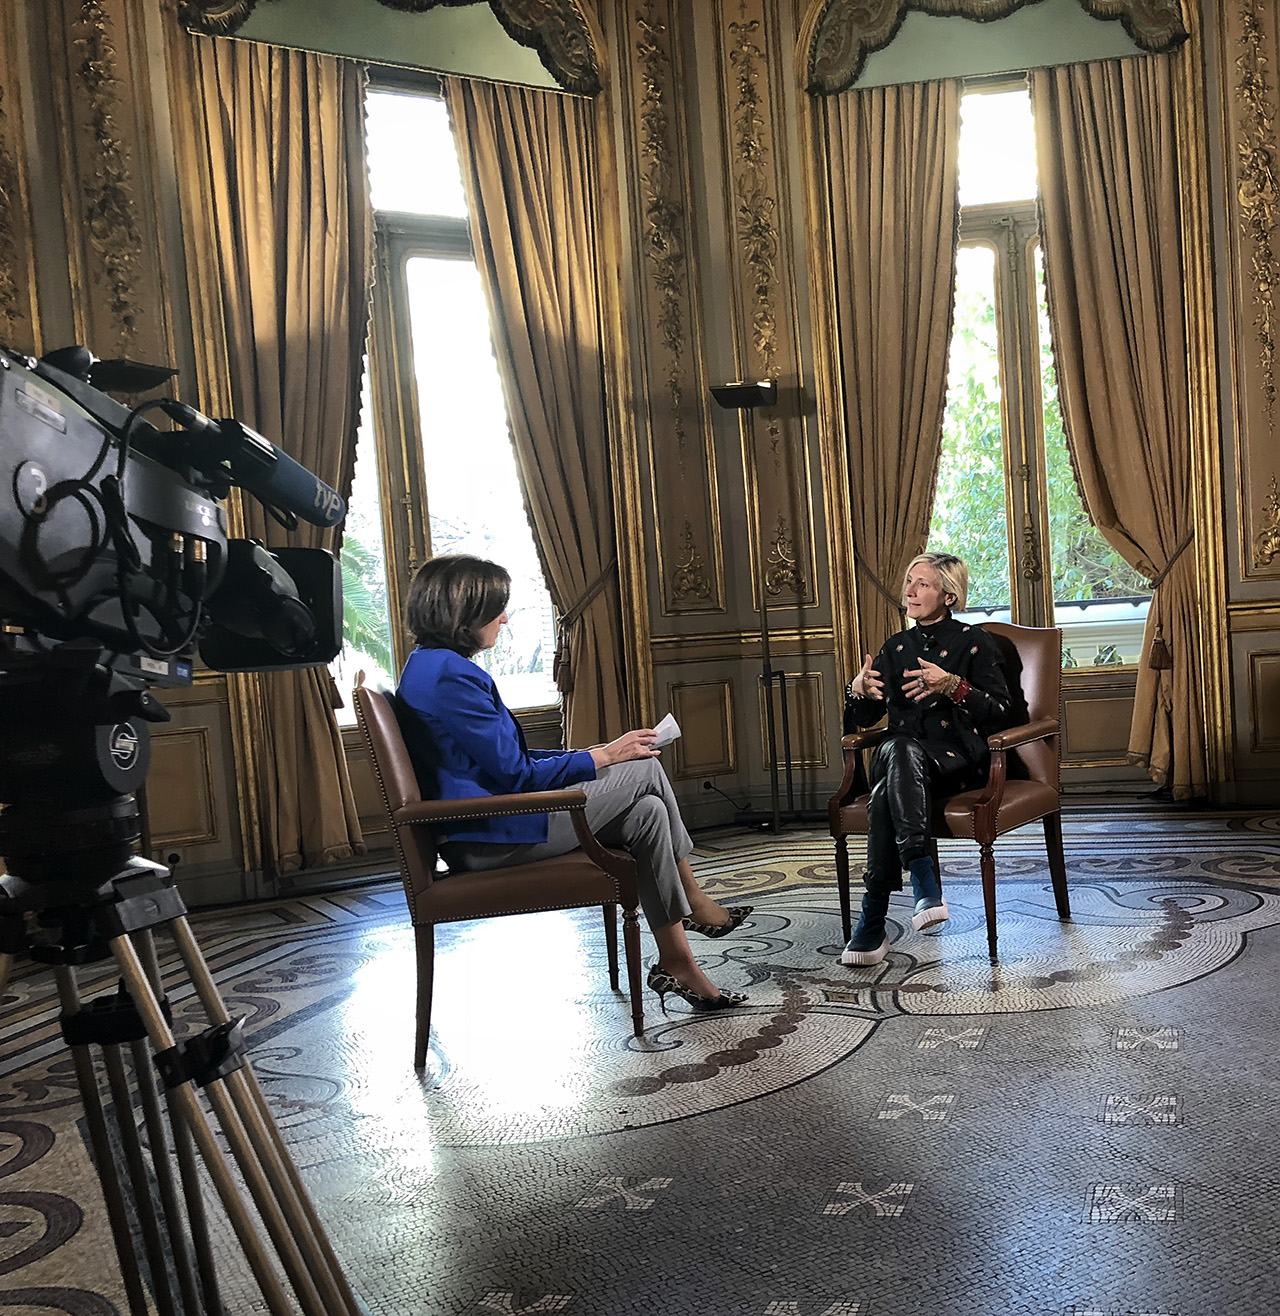 grimanesa amoros interview by Isabel de Haro on RTVE